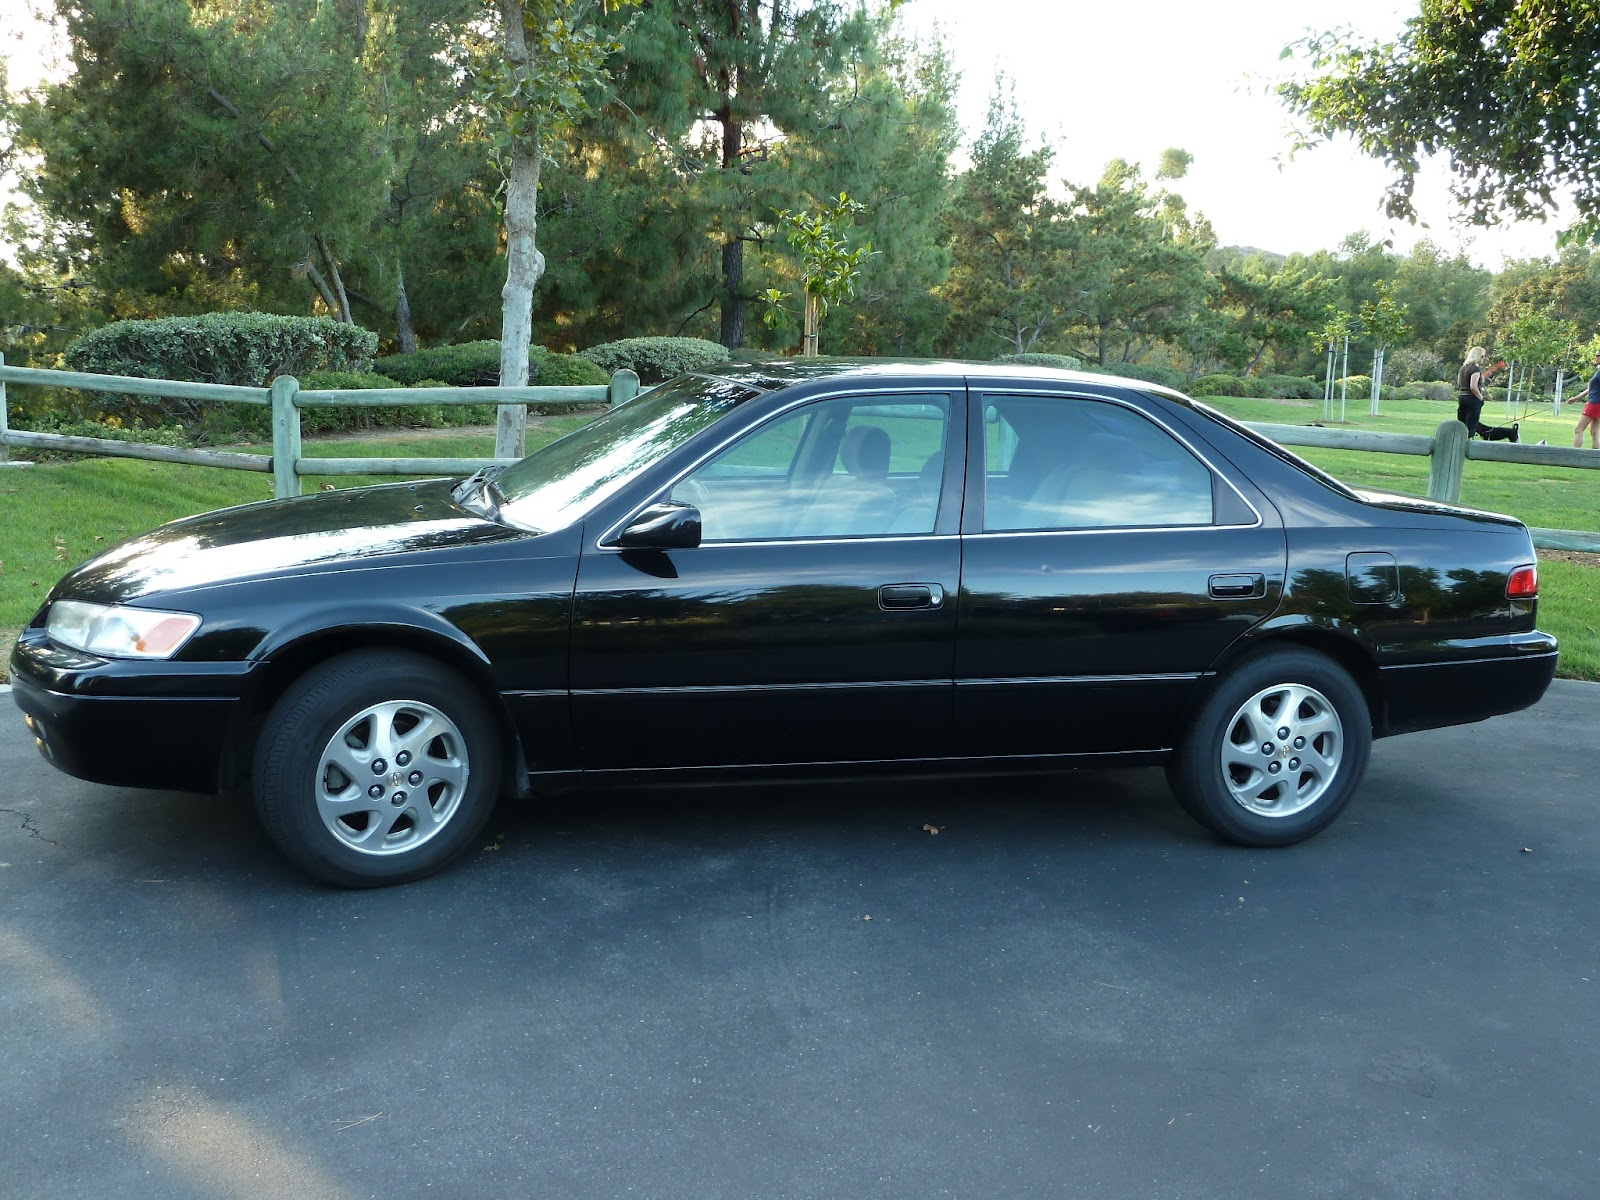 1999 toyota camry s o l d inventory for 1999 toyota camry window motor